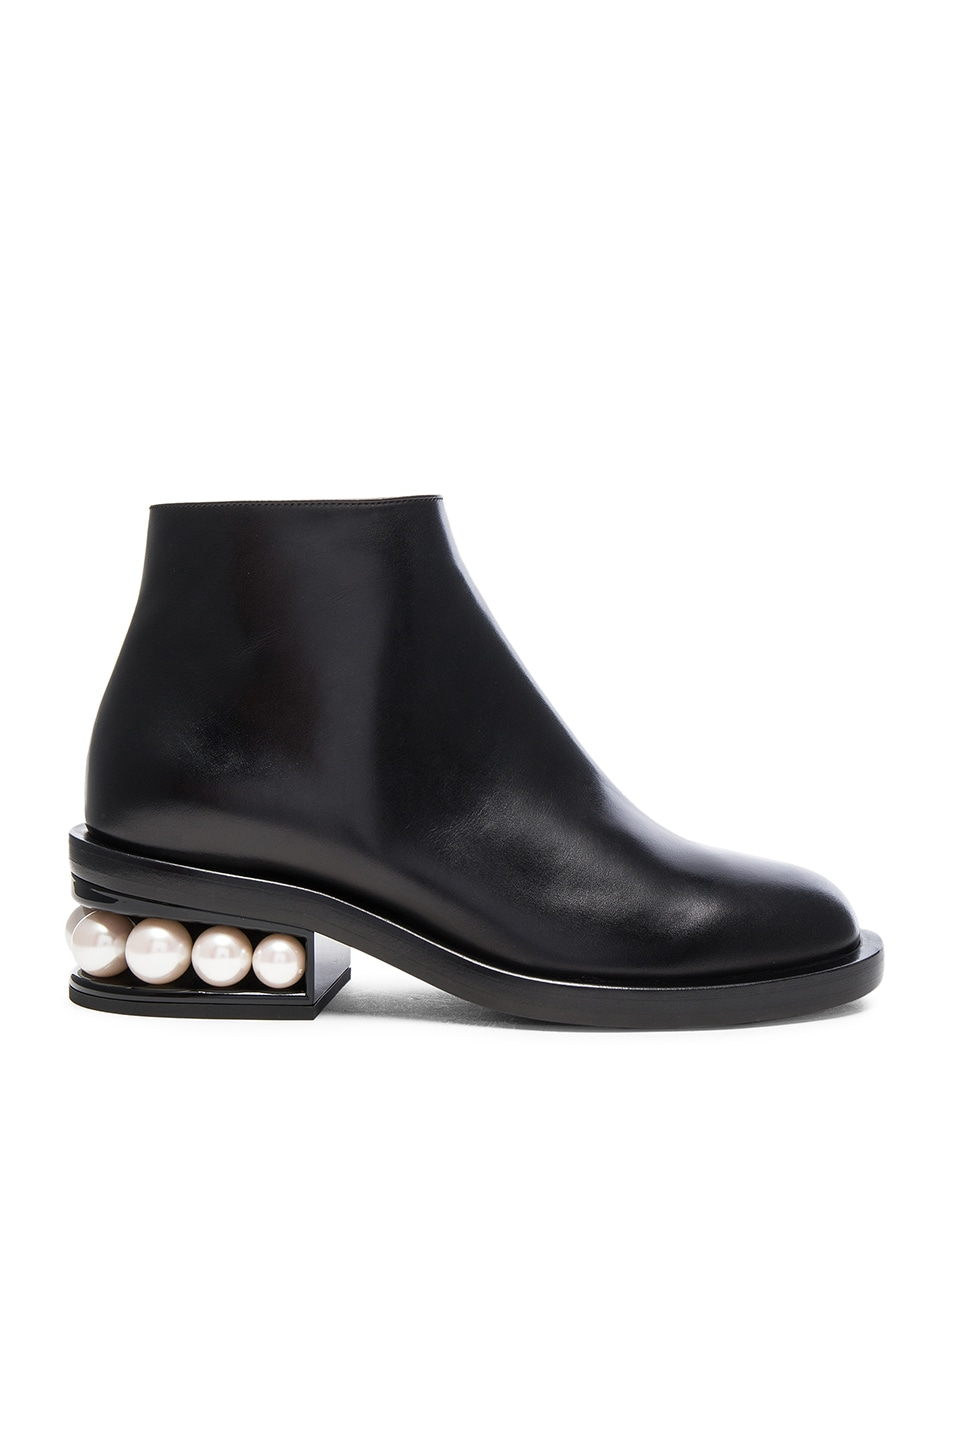 Image 1 of Nicholas Kirkwood Leather Casati Pearl Boots in Black